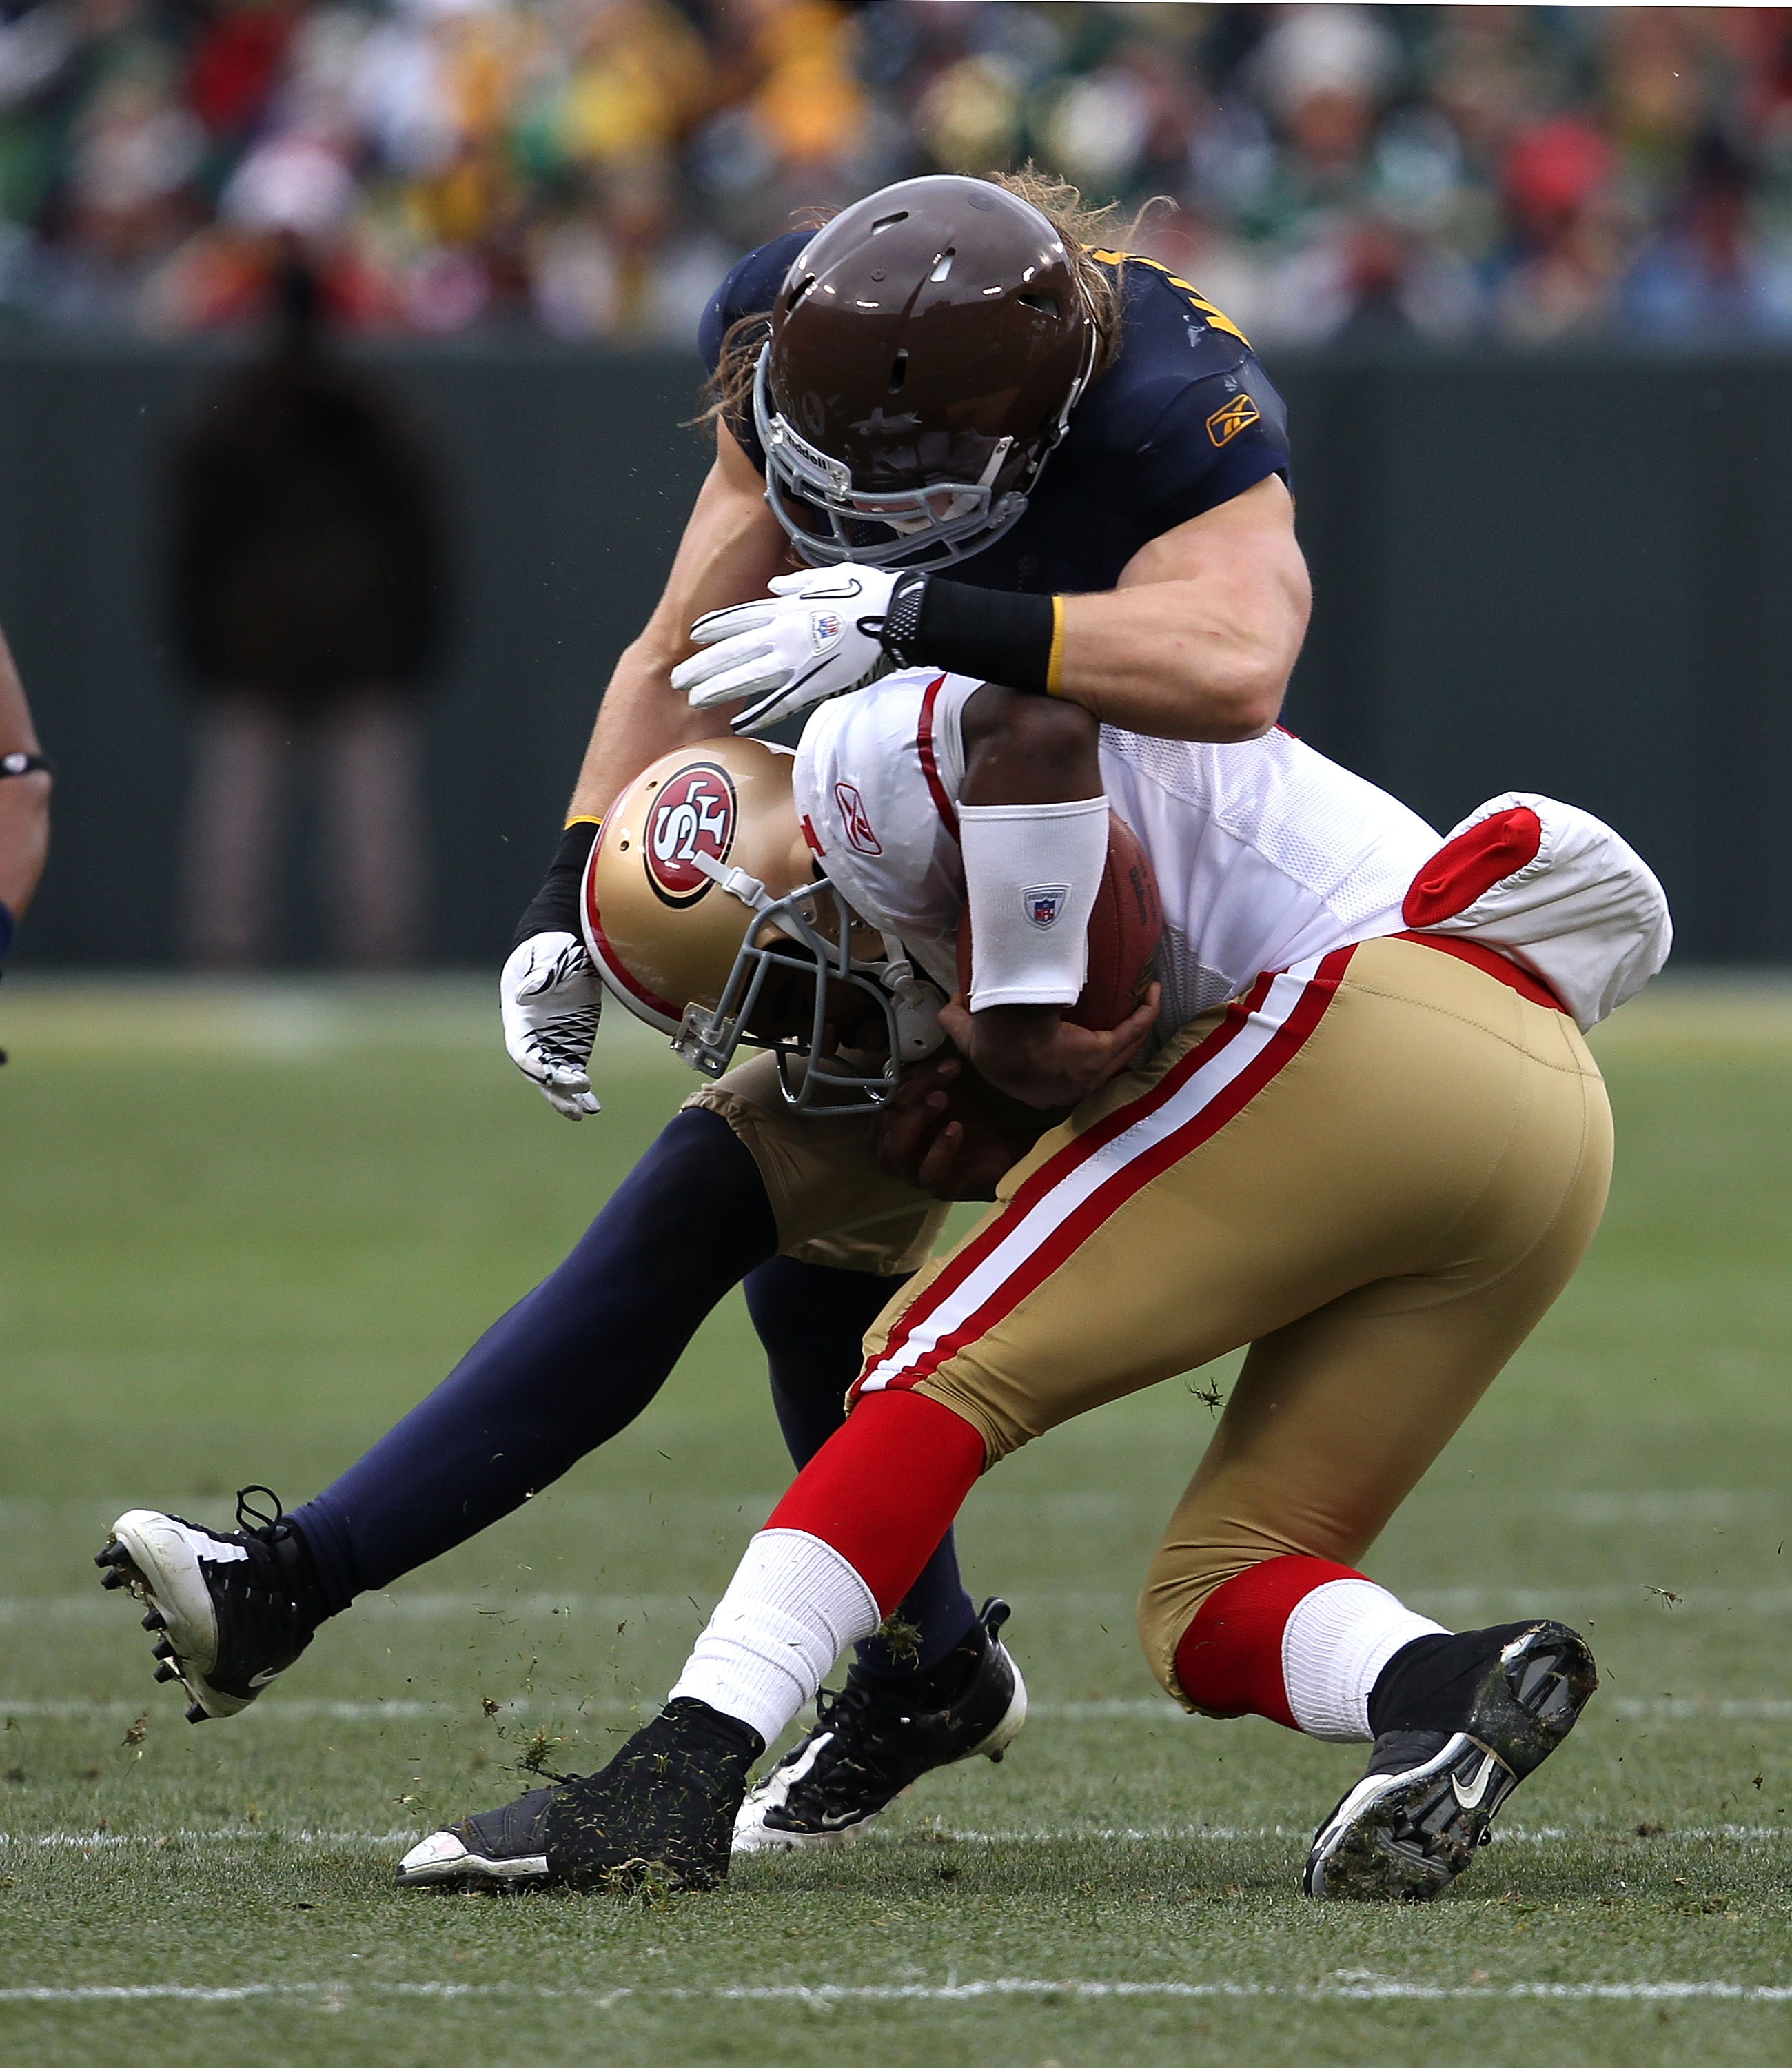 GREEN BAY, WI - DECEMBER 05: Troy Smith #1 of the San Francisco 49ers is tackled by Clay Matthews #52 of the Green Bay Packers at Lambeau Field on December 5, 2010 in Green Bay, Wisconsin. The Packers defeated the 49ers 34-16. (Photo by Jonathan Daniel/Ge